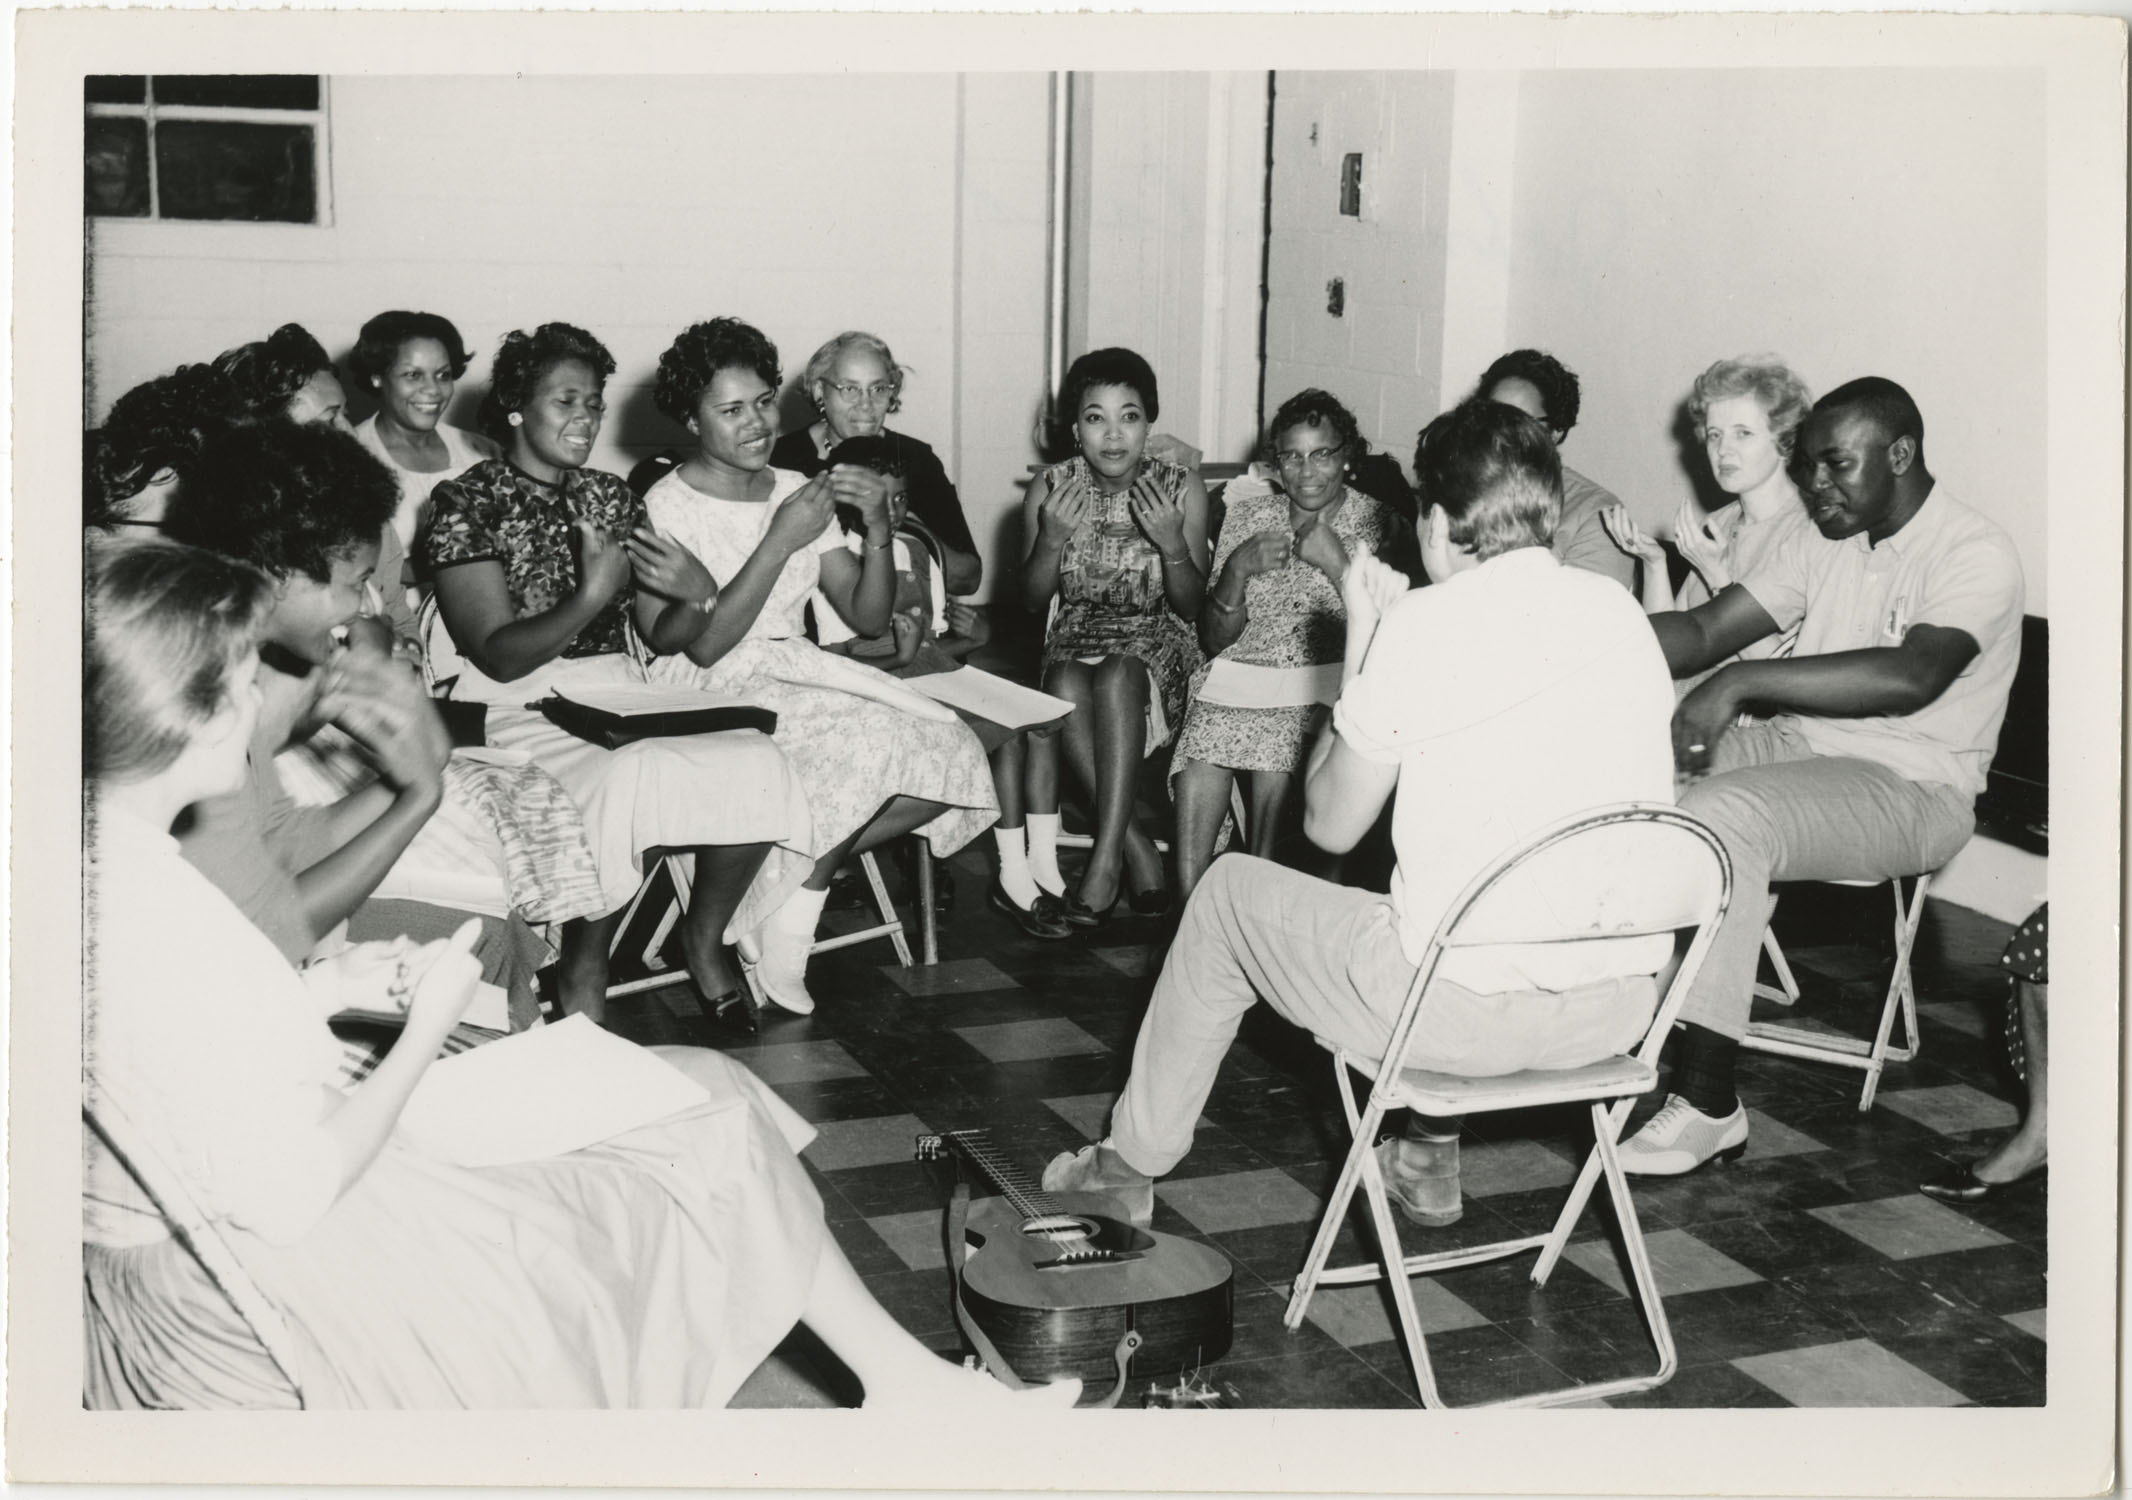 Singing Period, Johns Island, SC, 1959